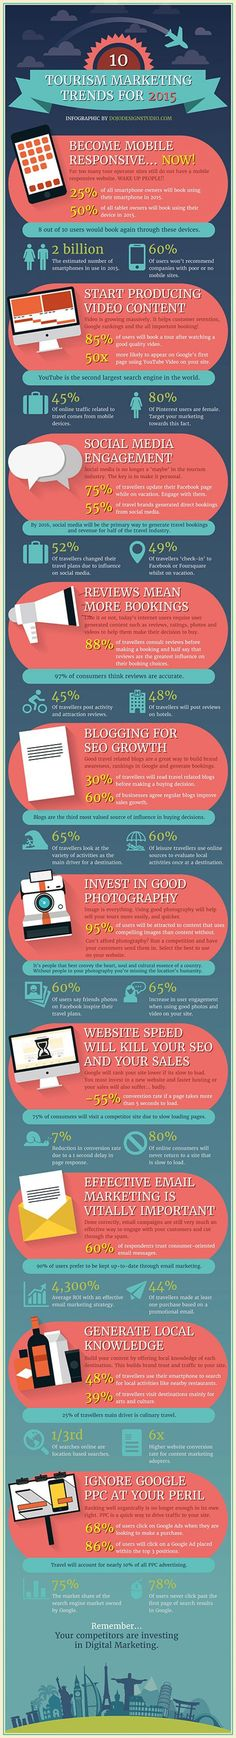 10 Tourism Marketing Trends for 2015 #infografía http://goo.gl/rkIbX4